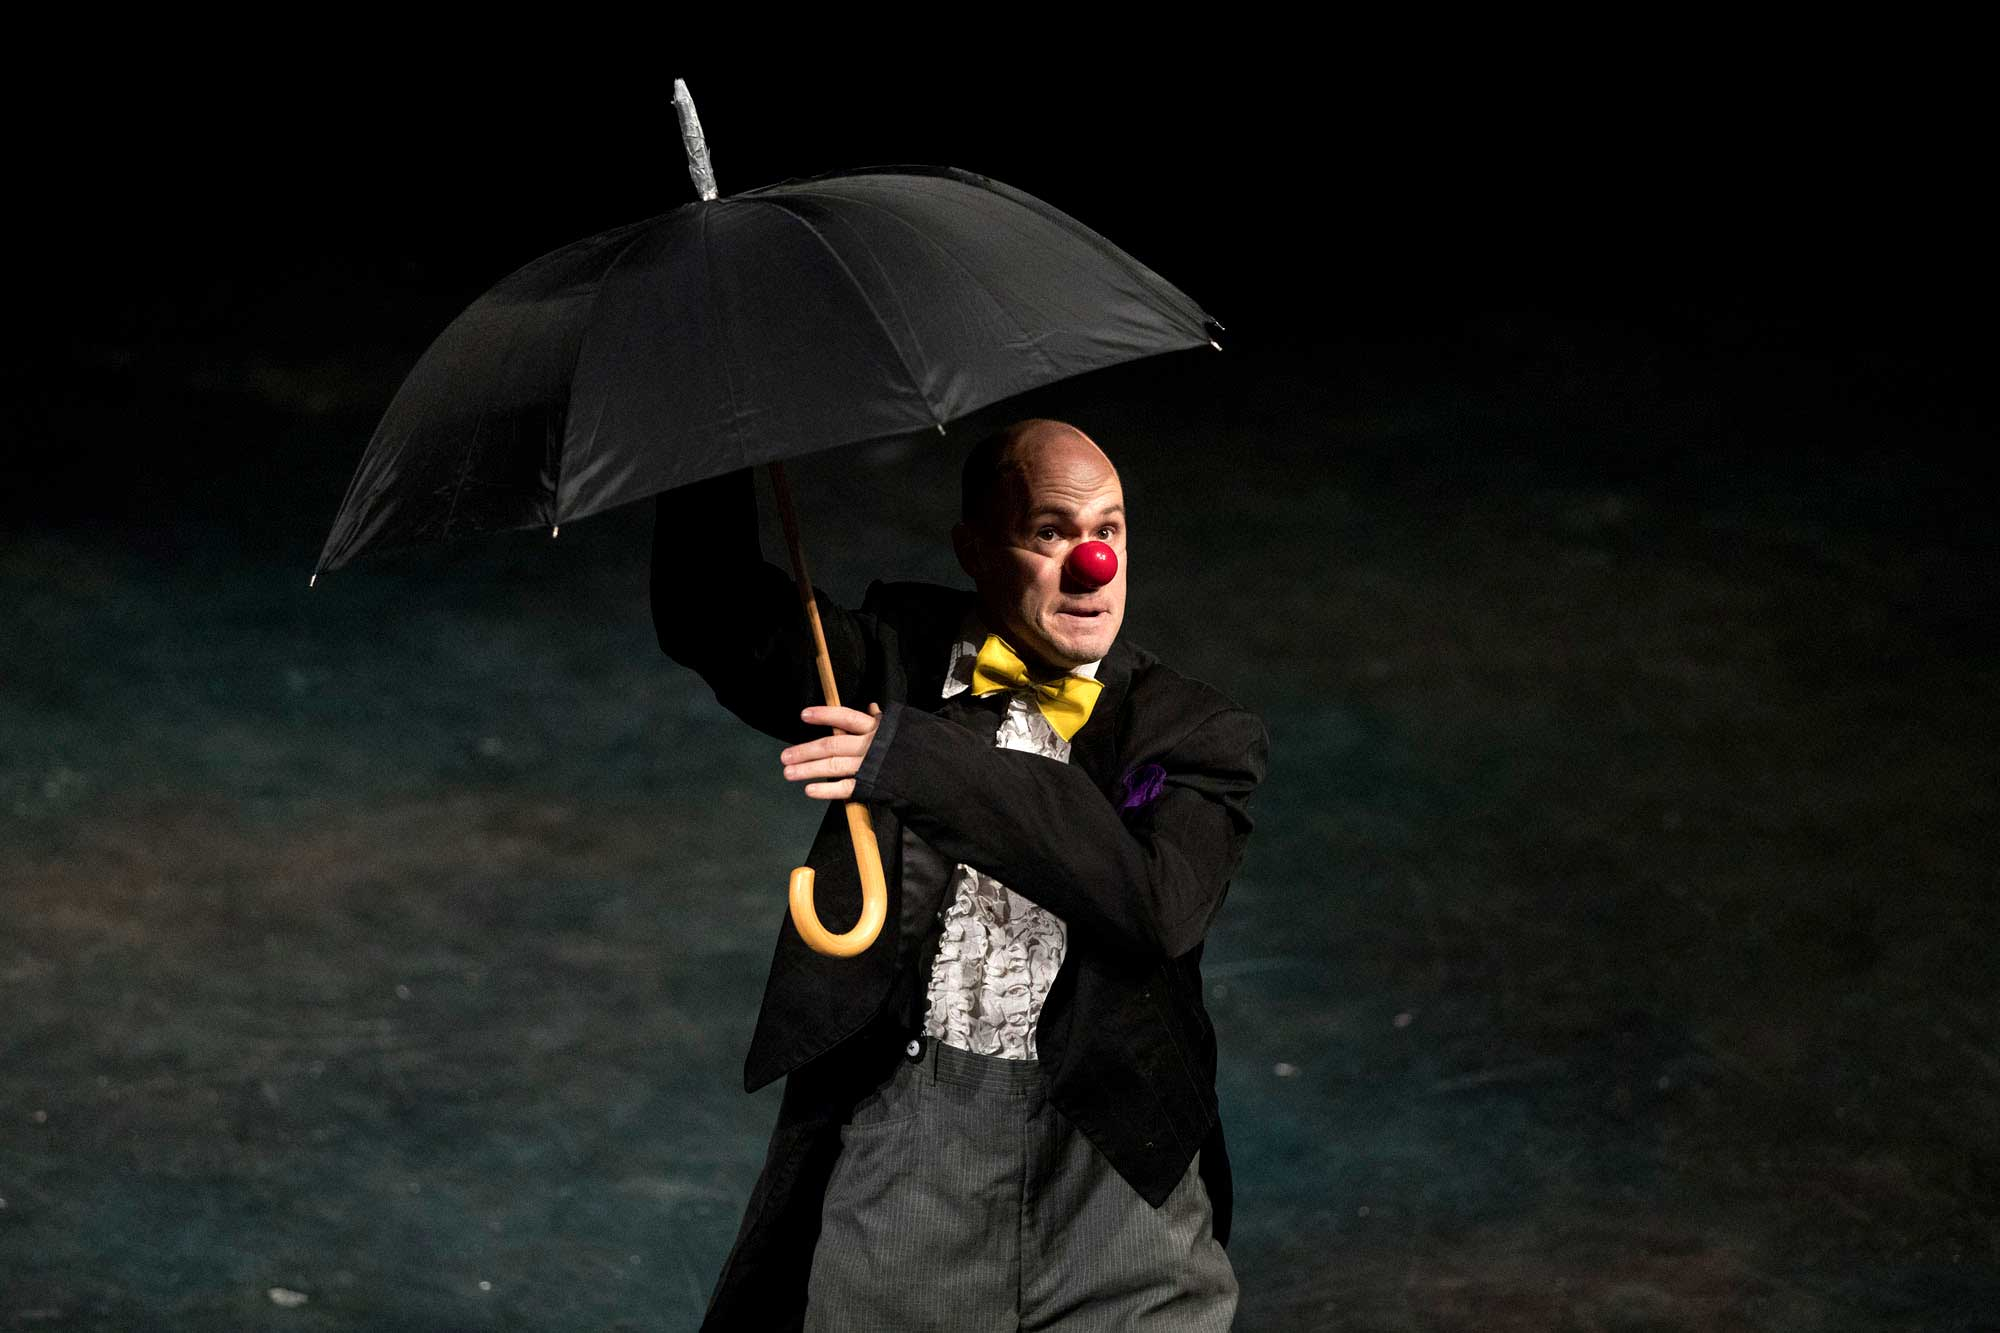 Cunningham has worked as a performer with Clowns Without Borders and served as the organization's executive director. He now sits on the nonprofit's board of directors.